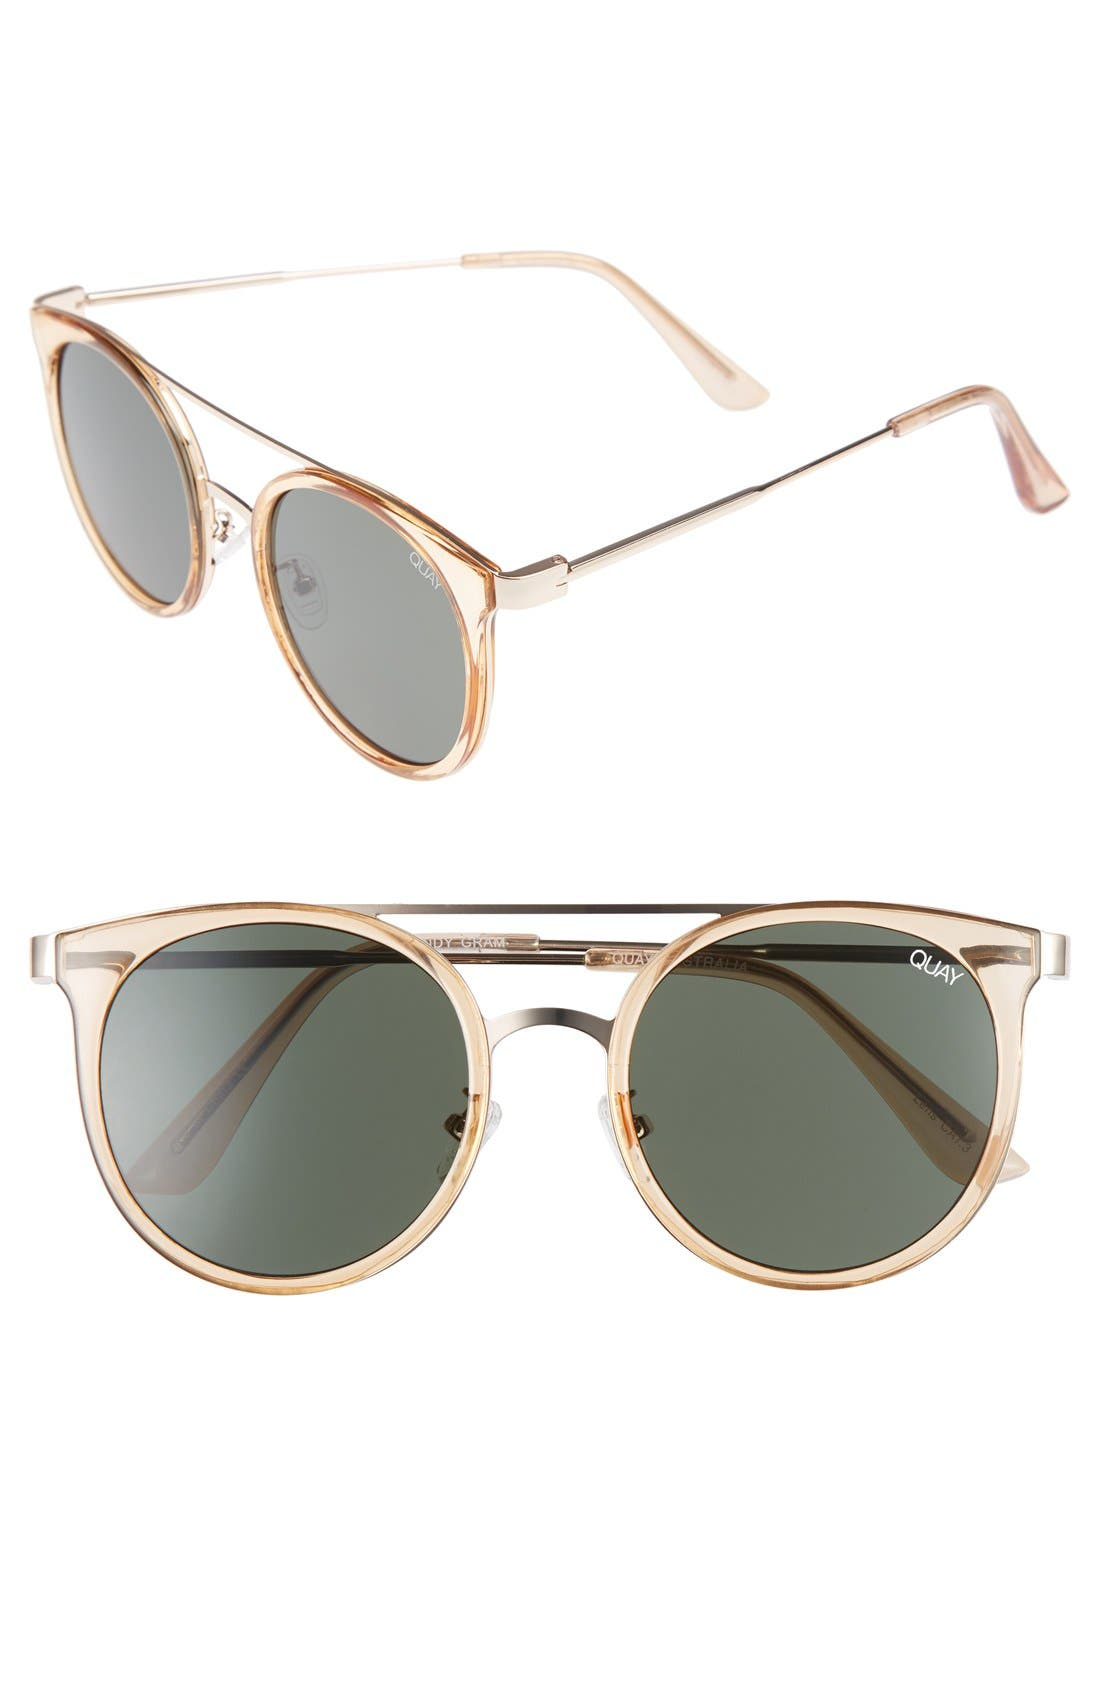 Kandy Gram 51mm Round Sunglasses,                             Main thumbnail 1, color,                             310